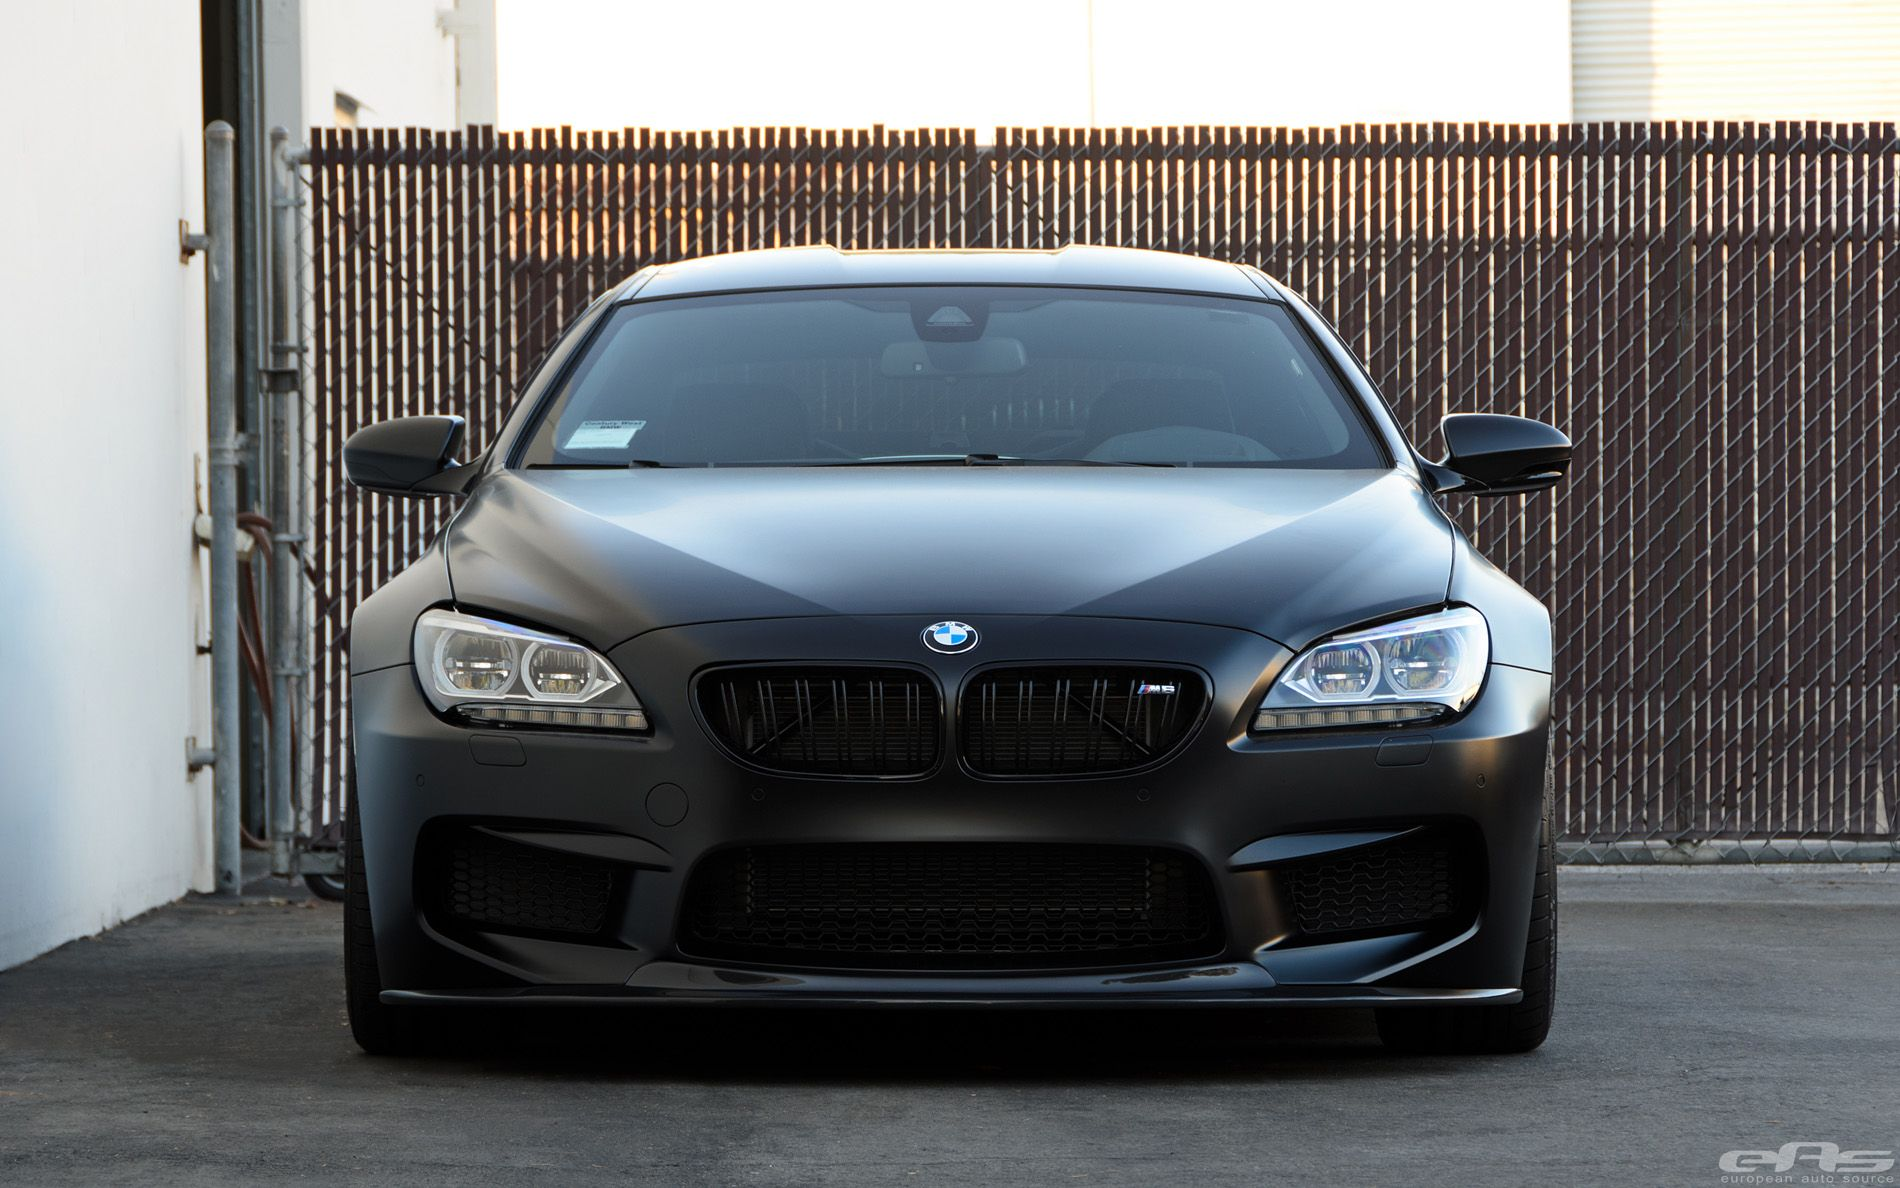 2017 Bmw M6 Gran Coupe Matte Black With Images Bmw M6 Bmw